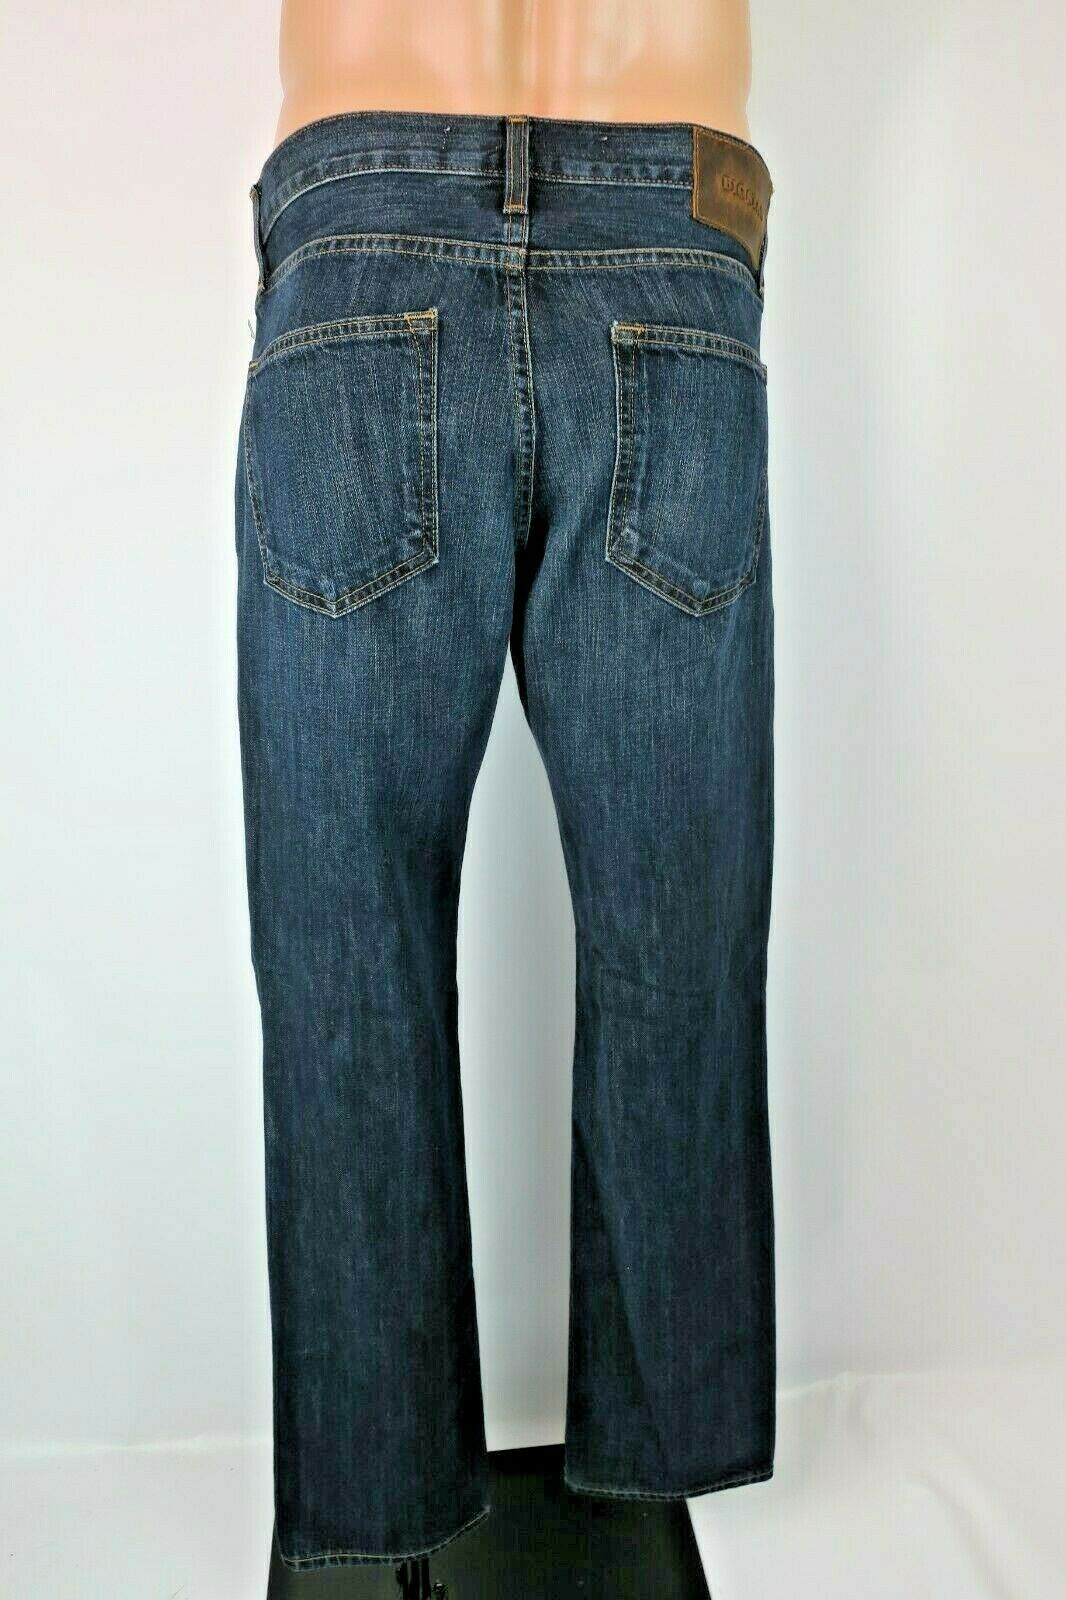 NEW BIG STAR Division Straight Leg Jeans Mens 32R 33 inseam Dark Denim Wash NWT